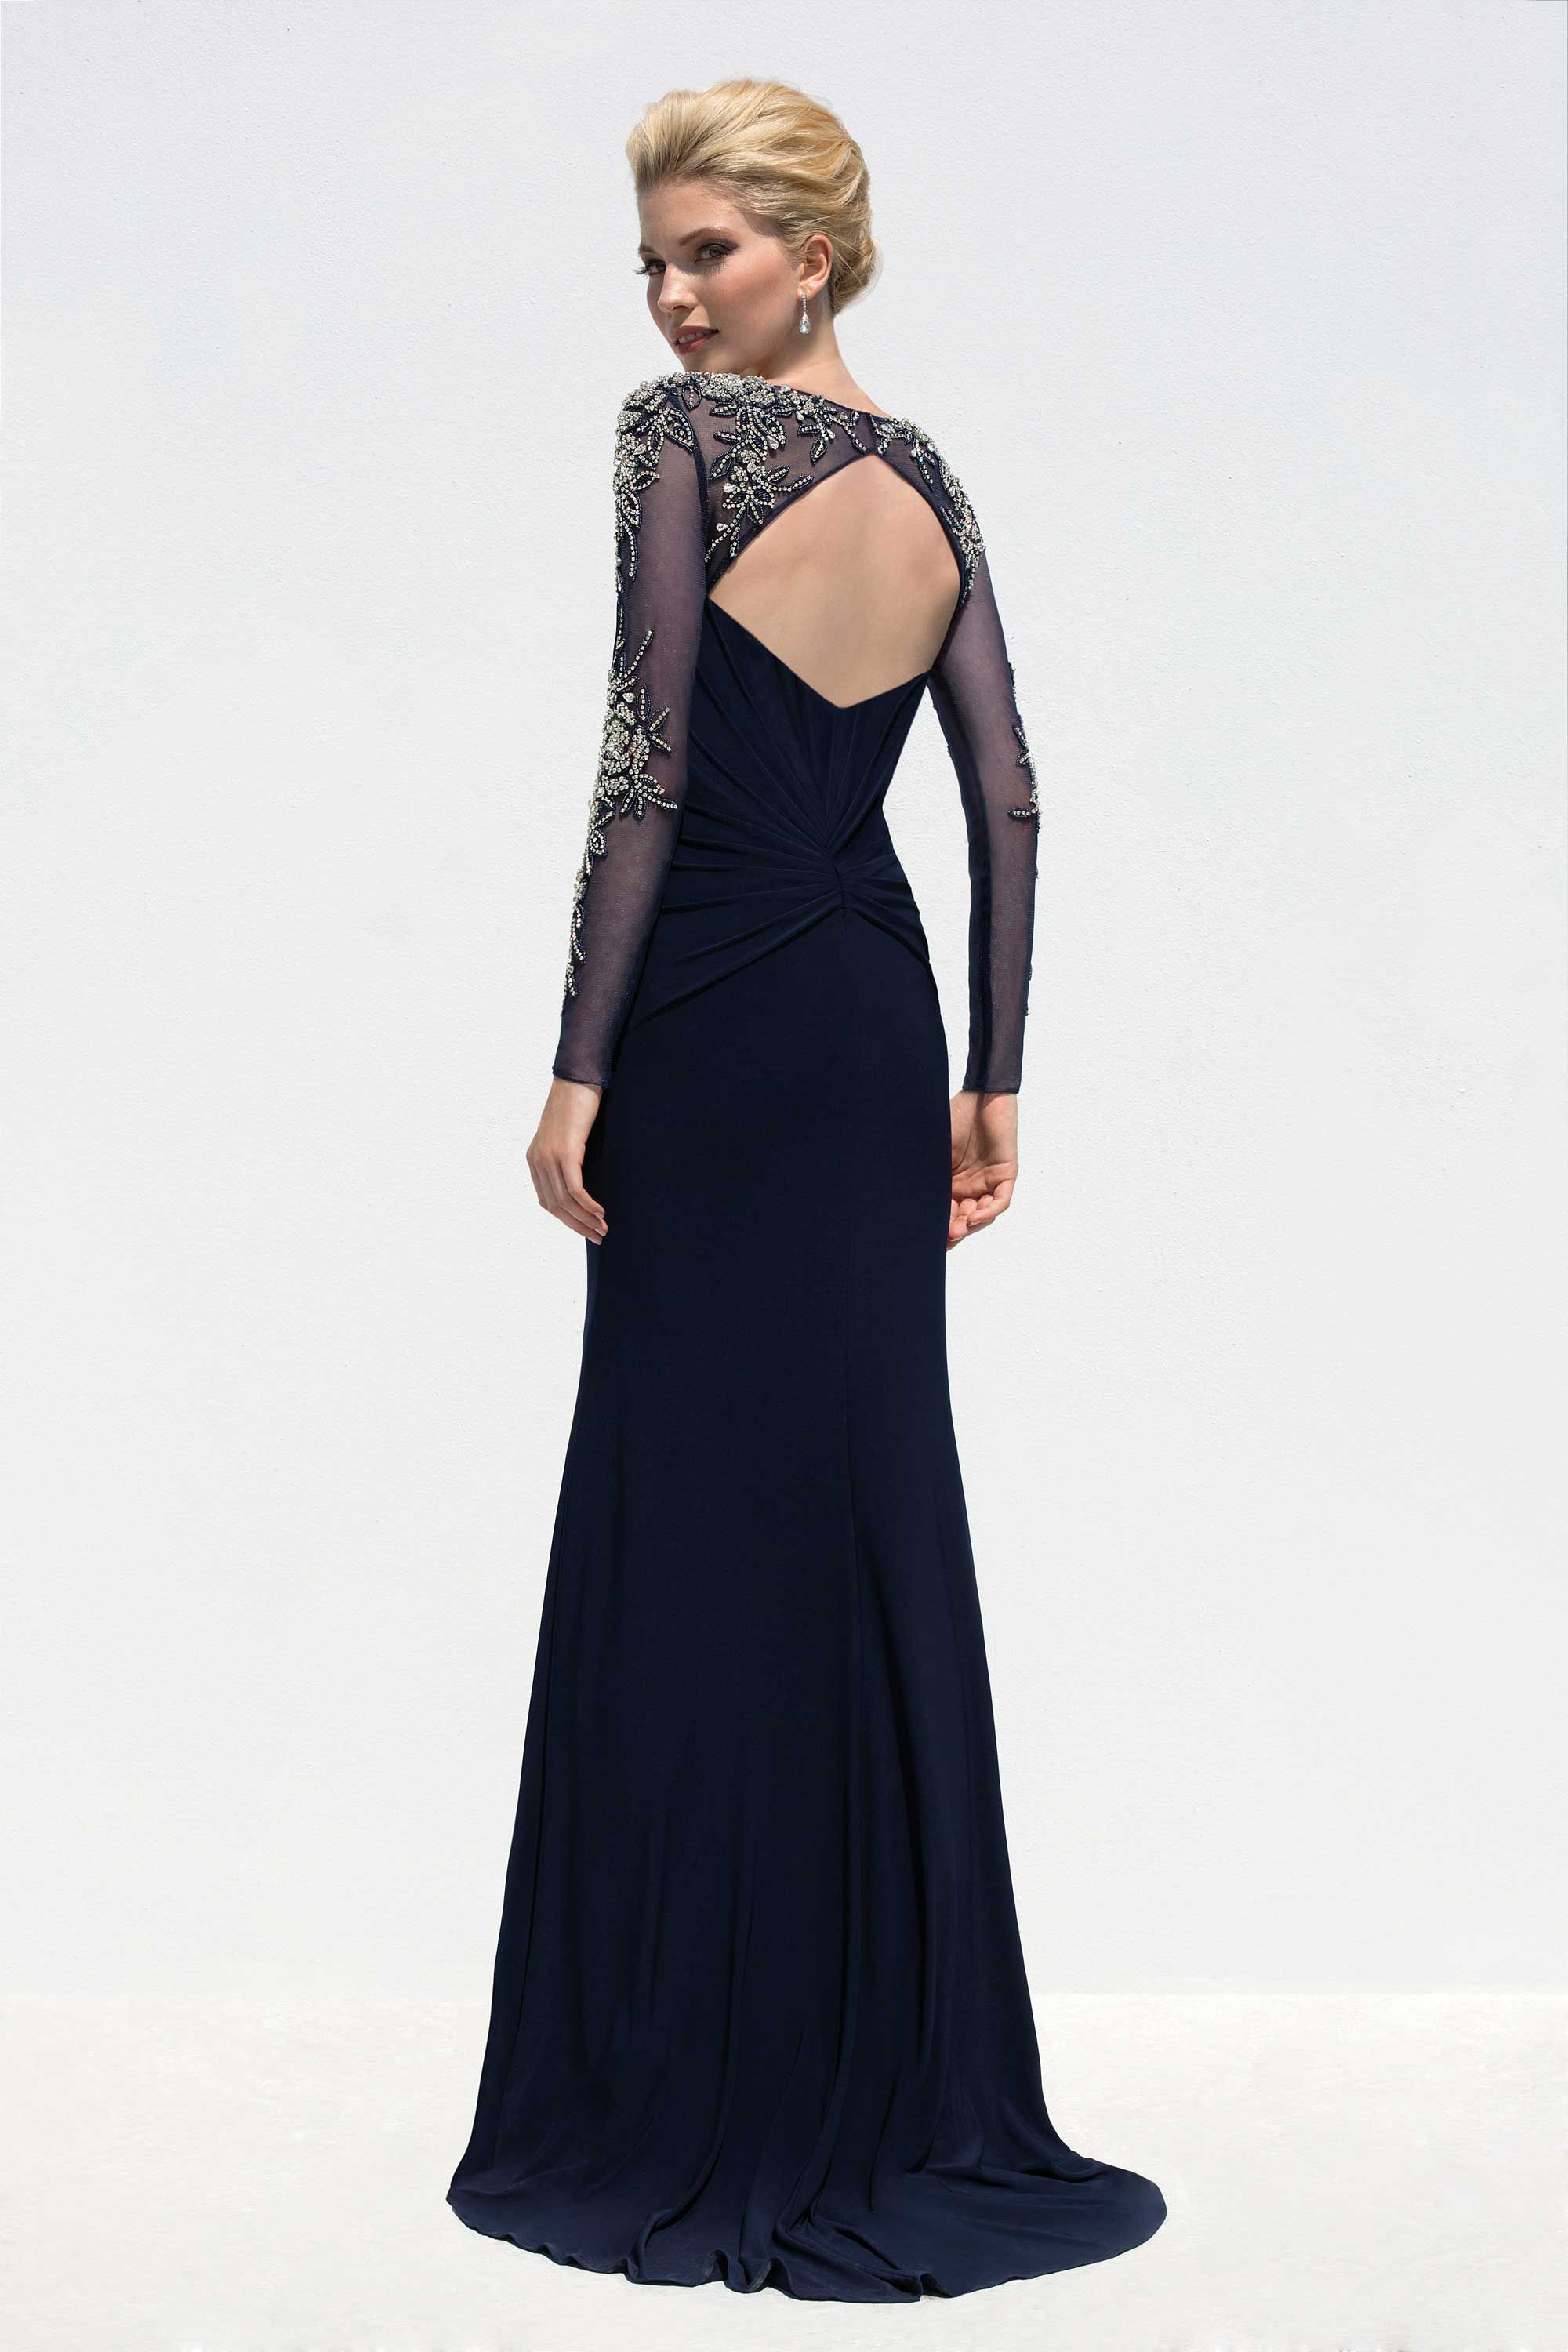 Eleni elias is a breathtaking collection the collection has